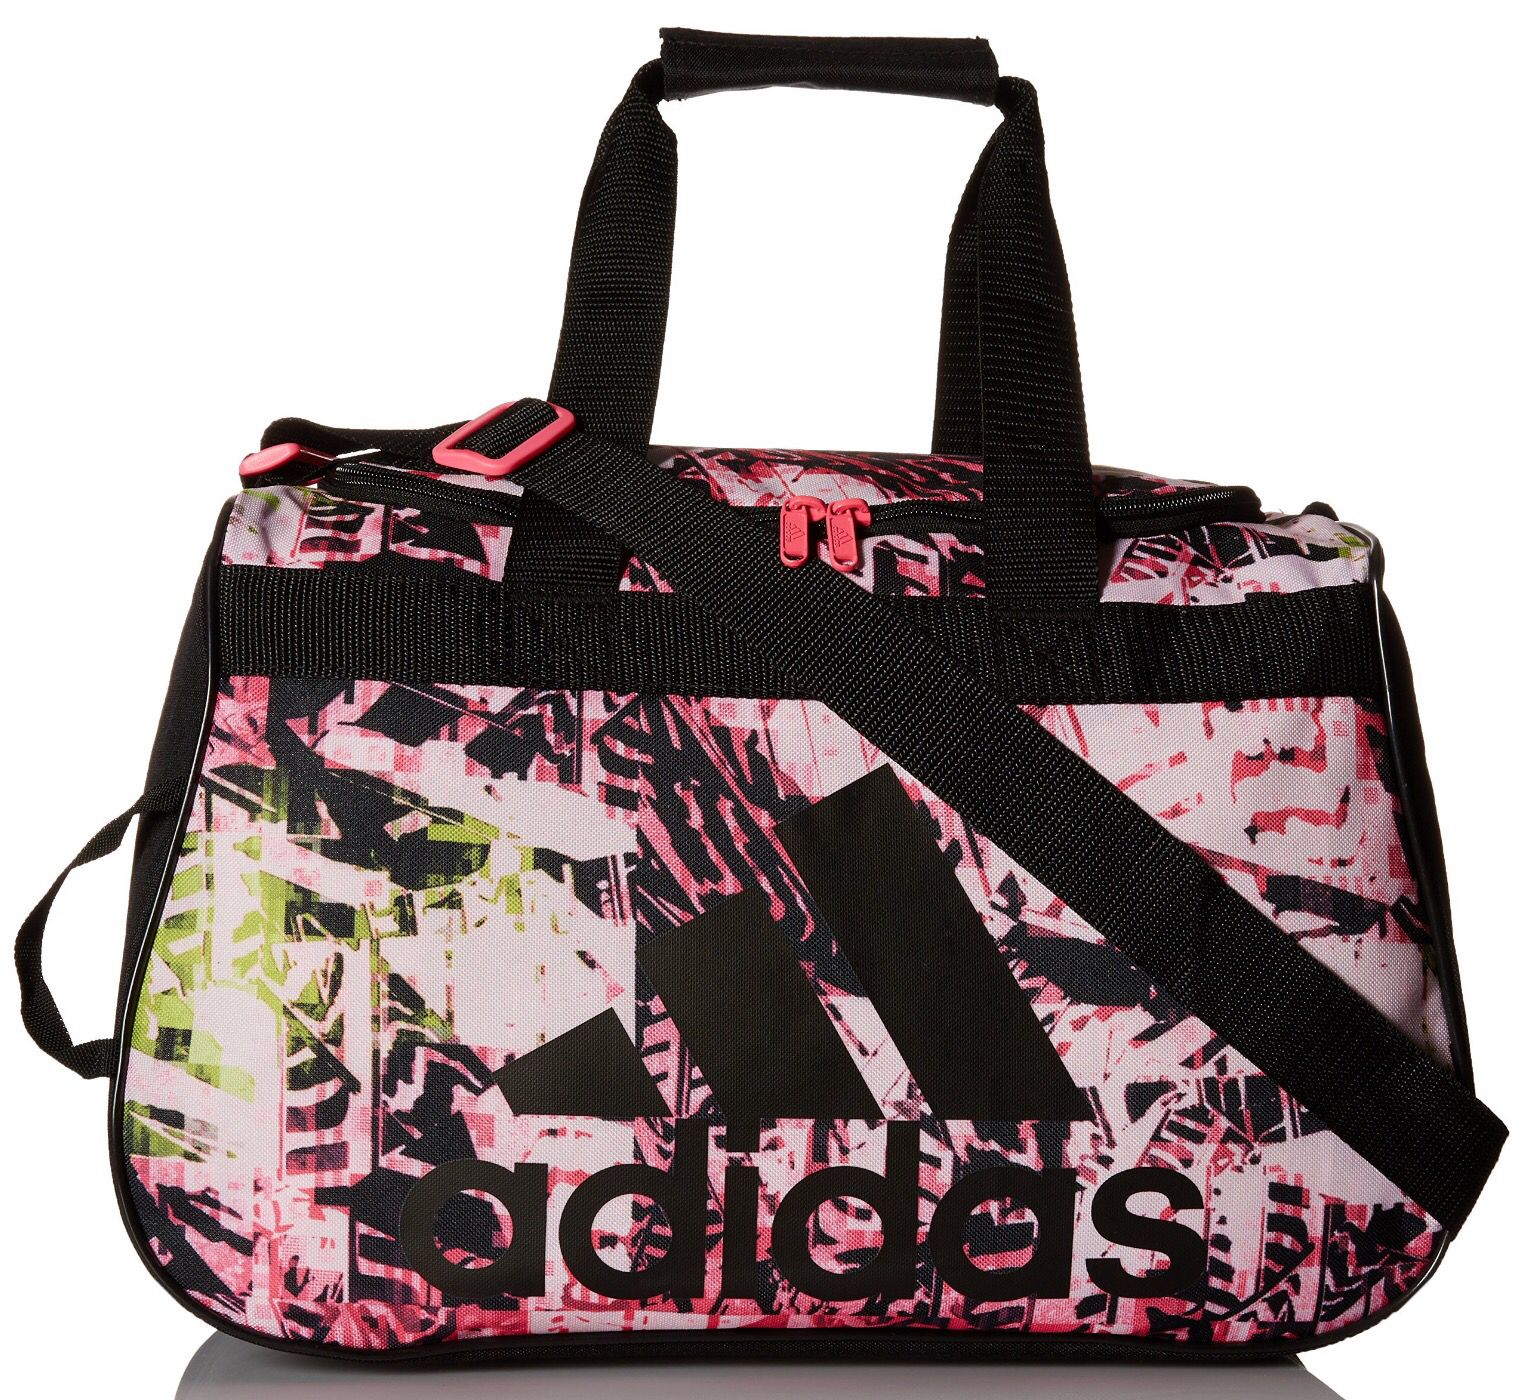 Adidas women s diablo small duffle gym bag. Amazon aa5ec6388